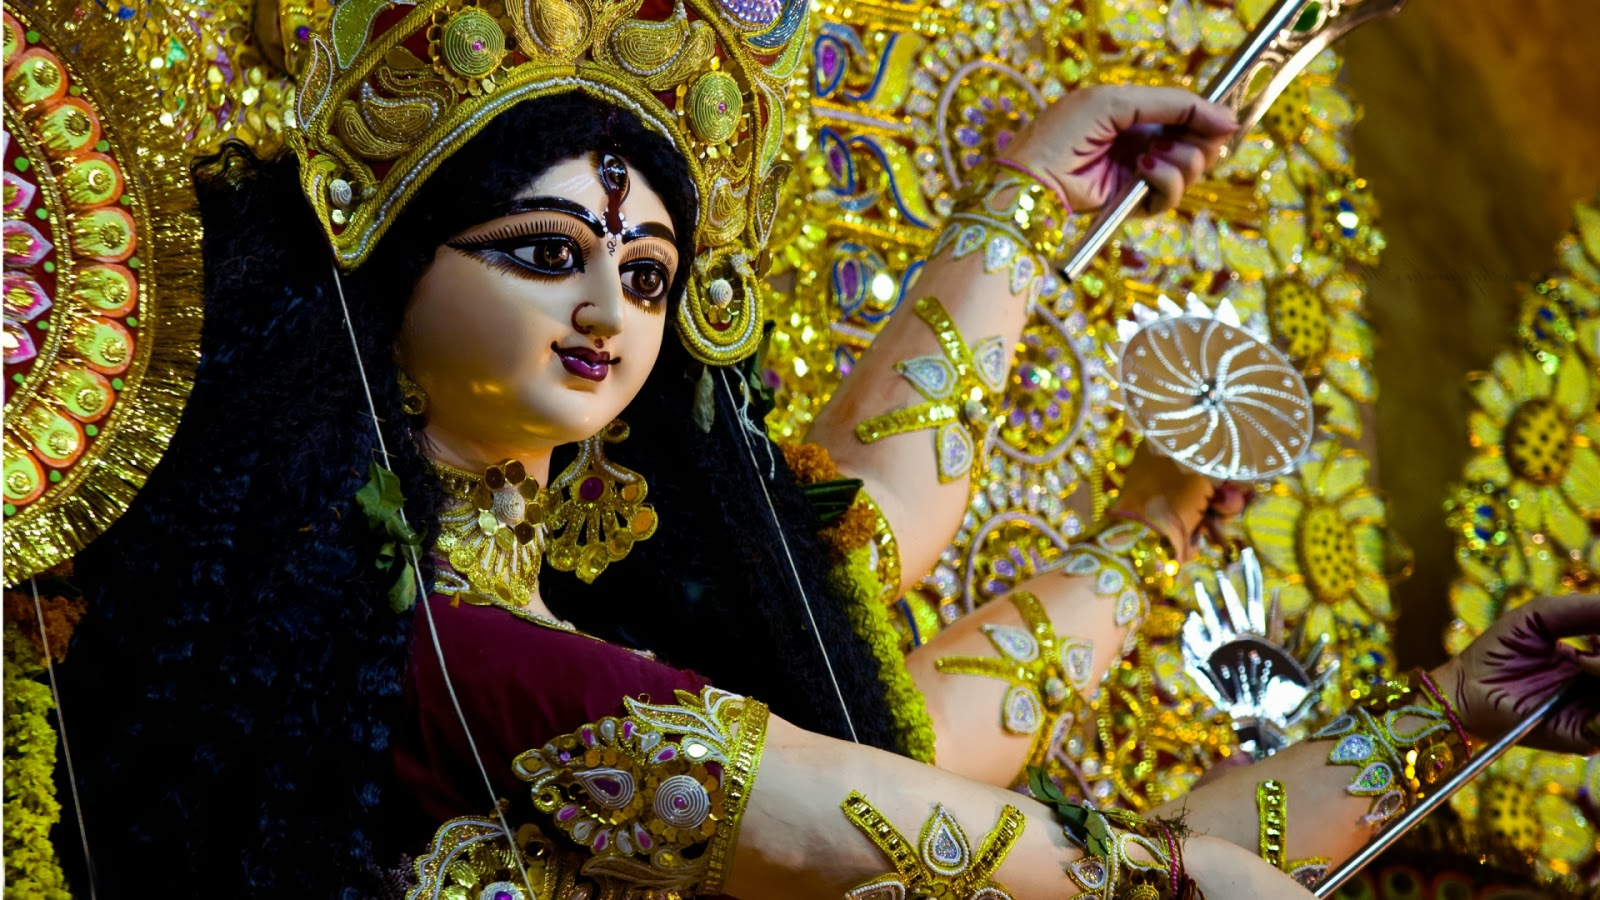 Maa Durga Images And Wallpapers Lovely QuotesDialouge Lyrics 1600x900